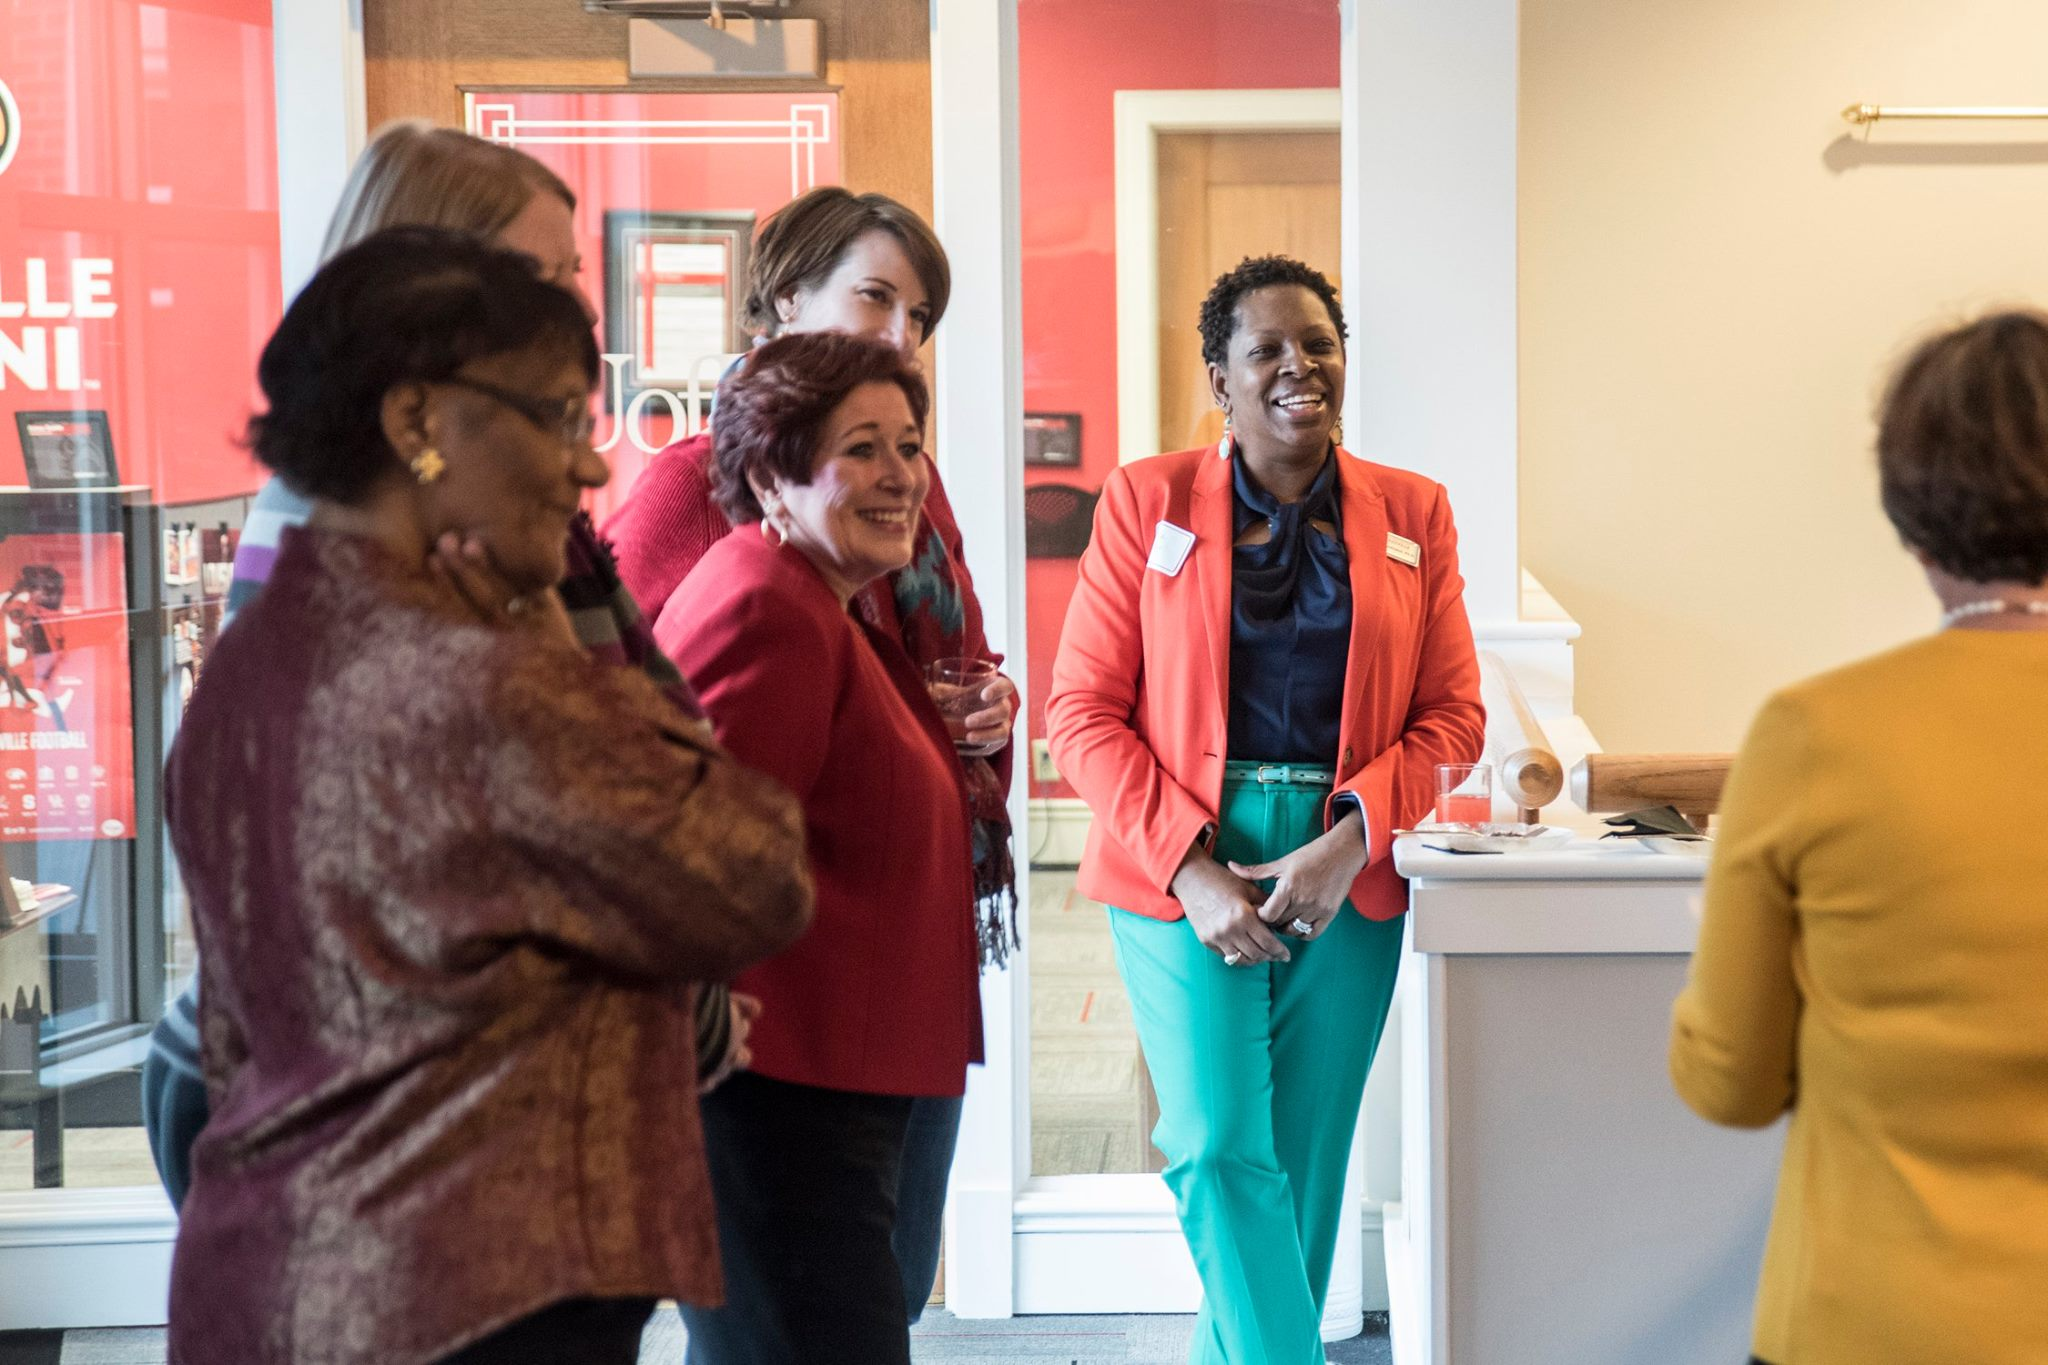 UofL Women's Network will host inaugural Women's Network Roundtable for Faculty/Staff